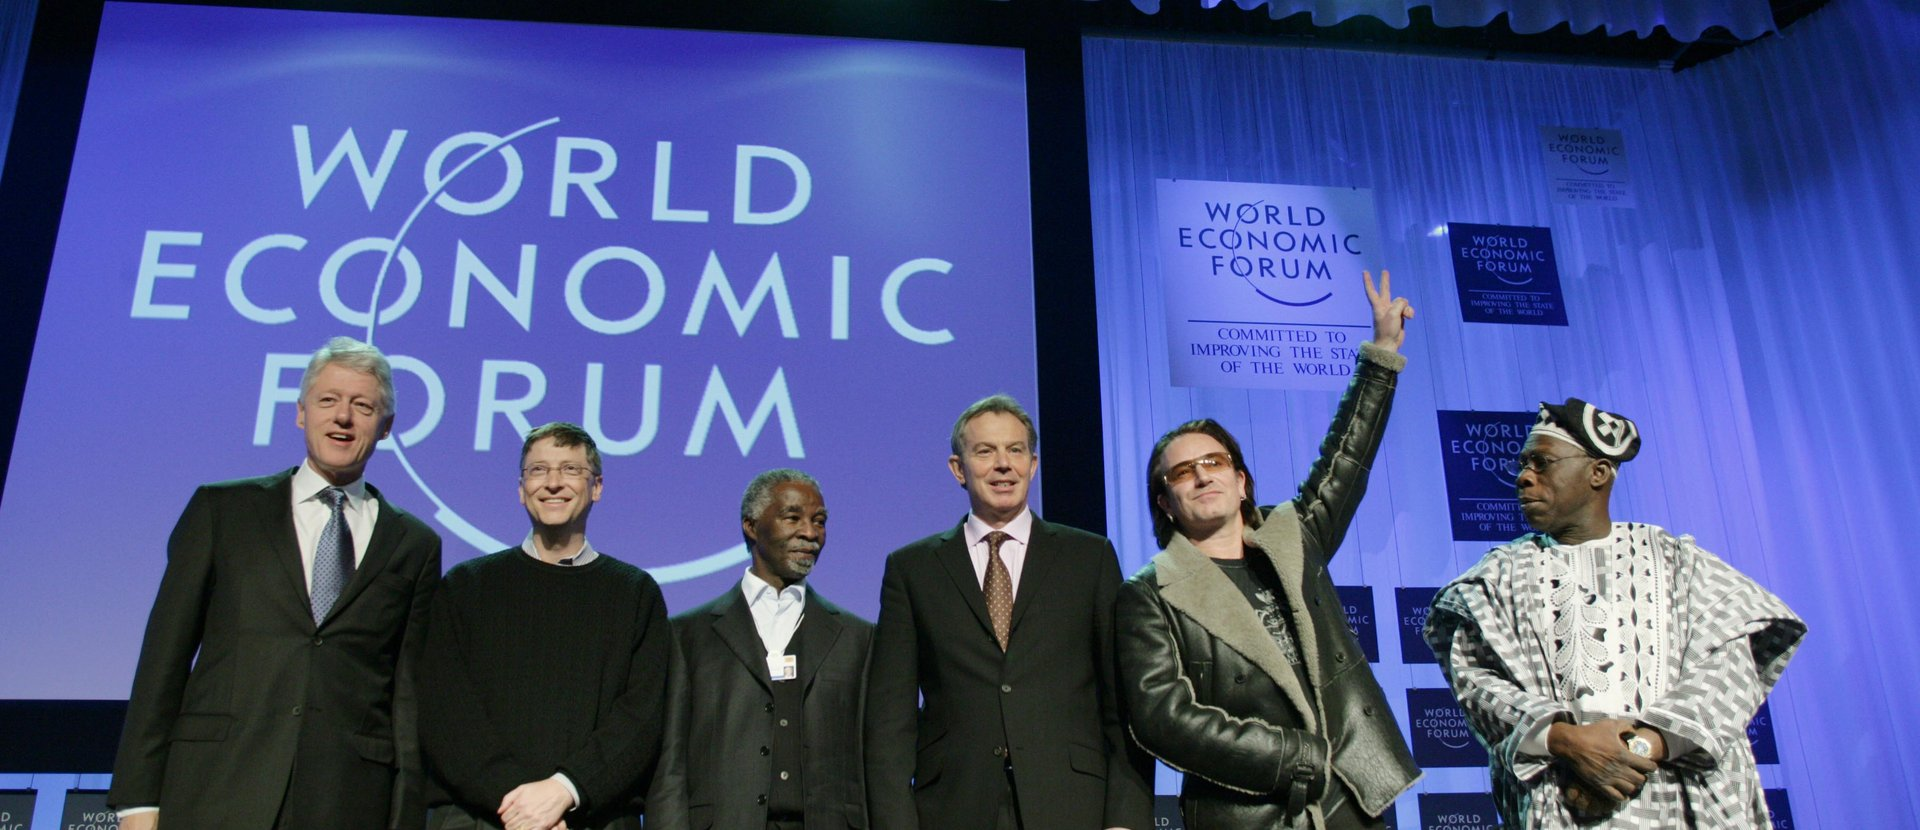 World Economic Forums (WEF) | Davos Klosters